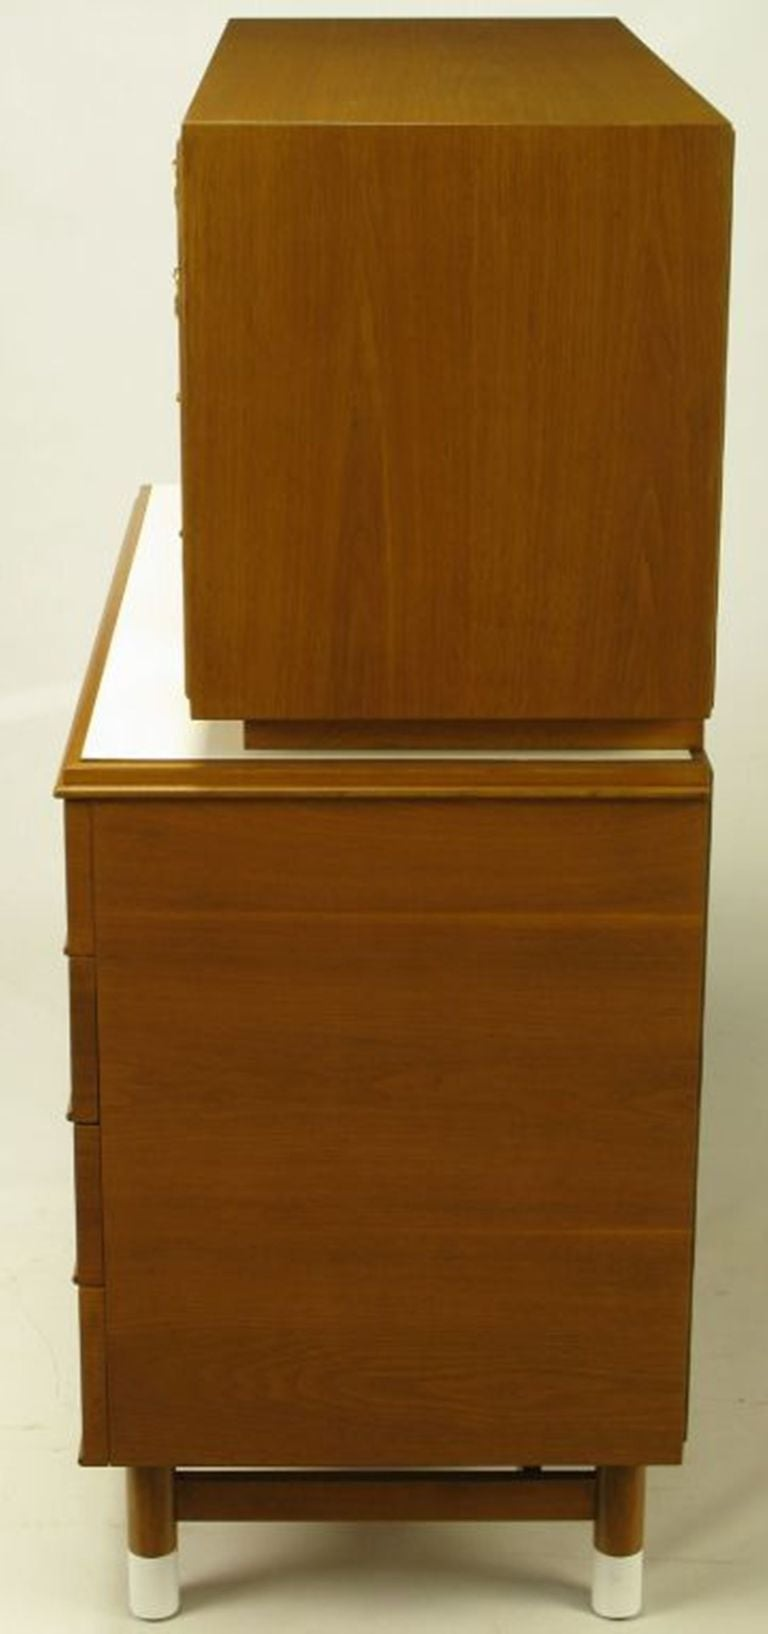 Renzo Rutili Mahogany & White Micarta Chest-On-Chest In Excellent Condition For Sale In Chicago, IL